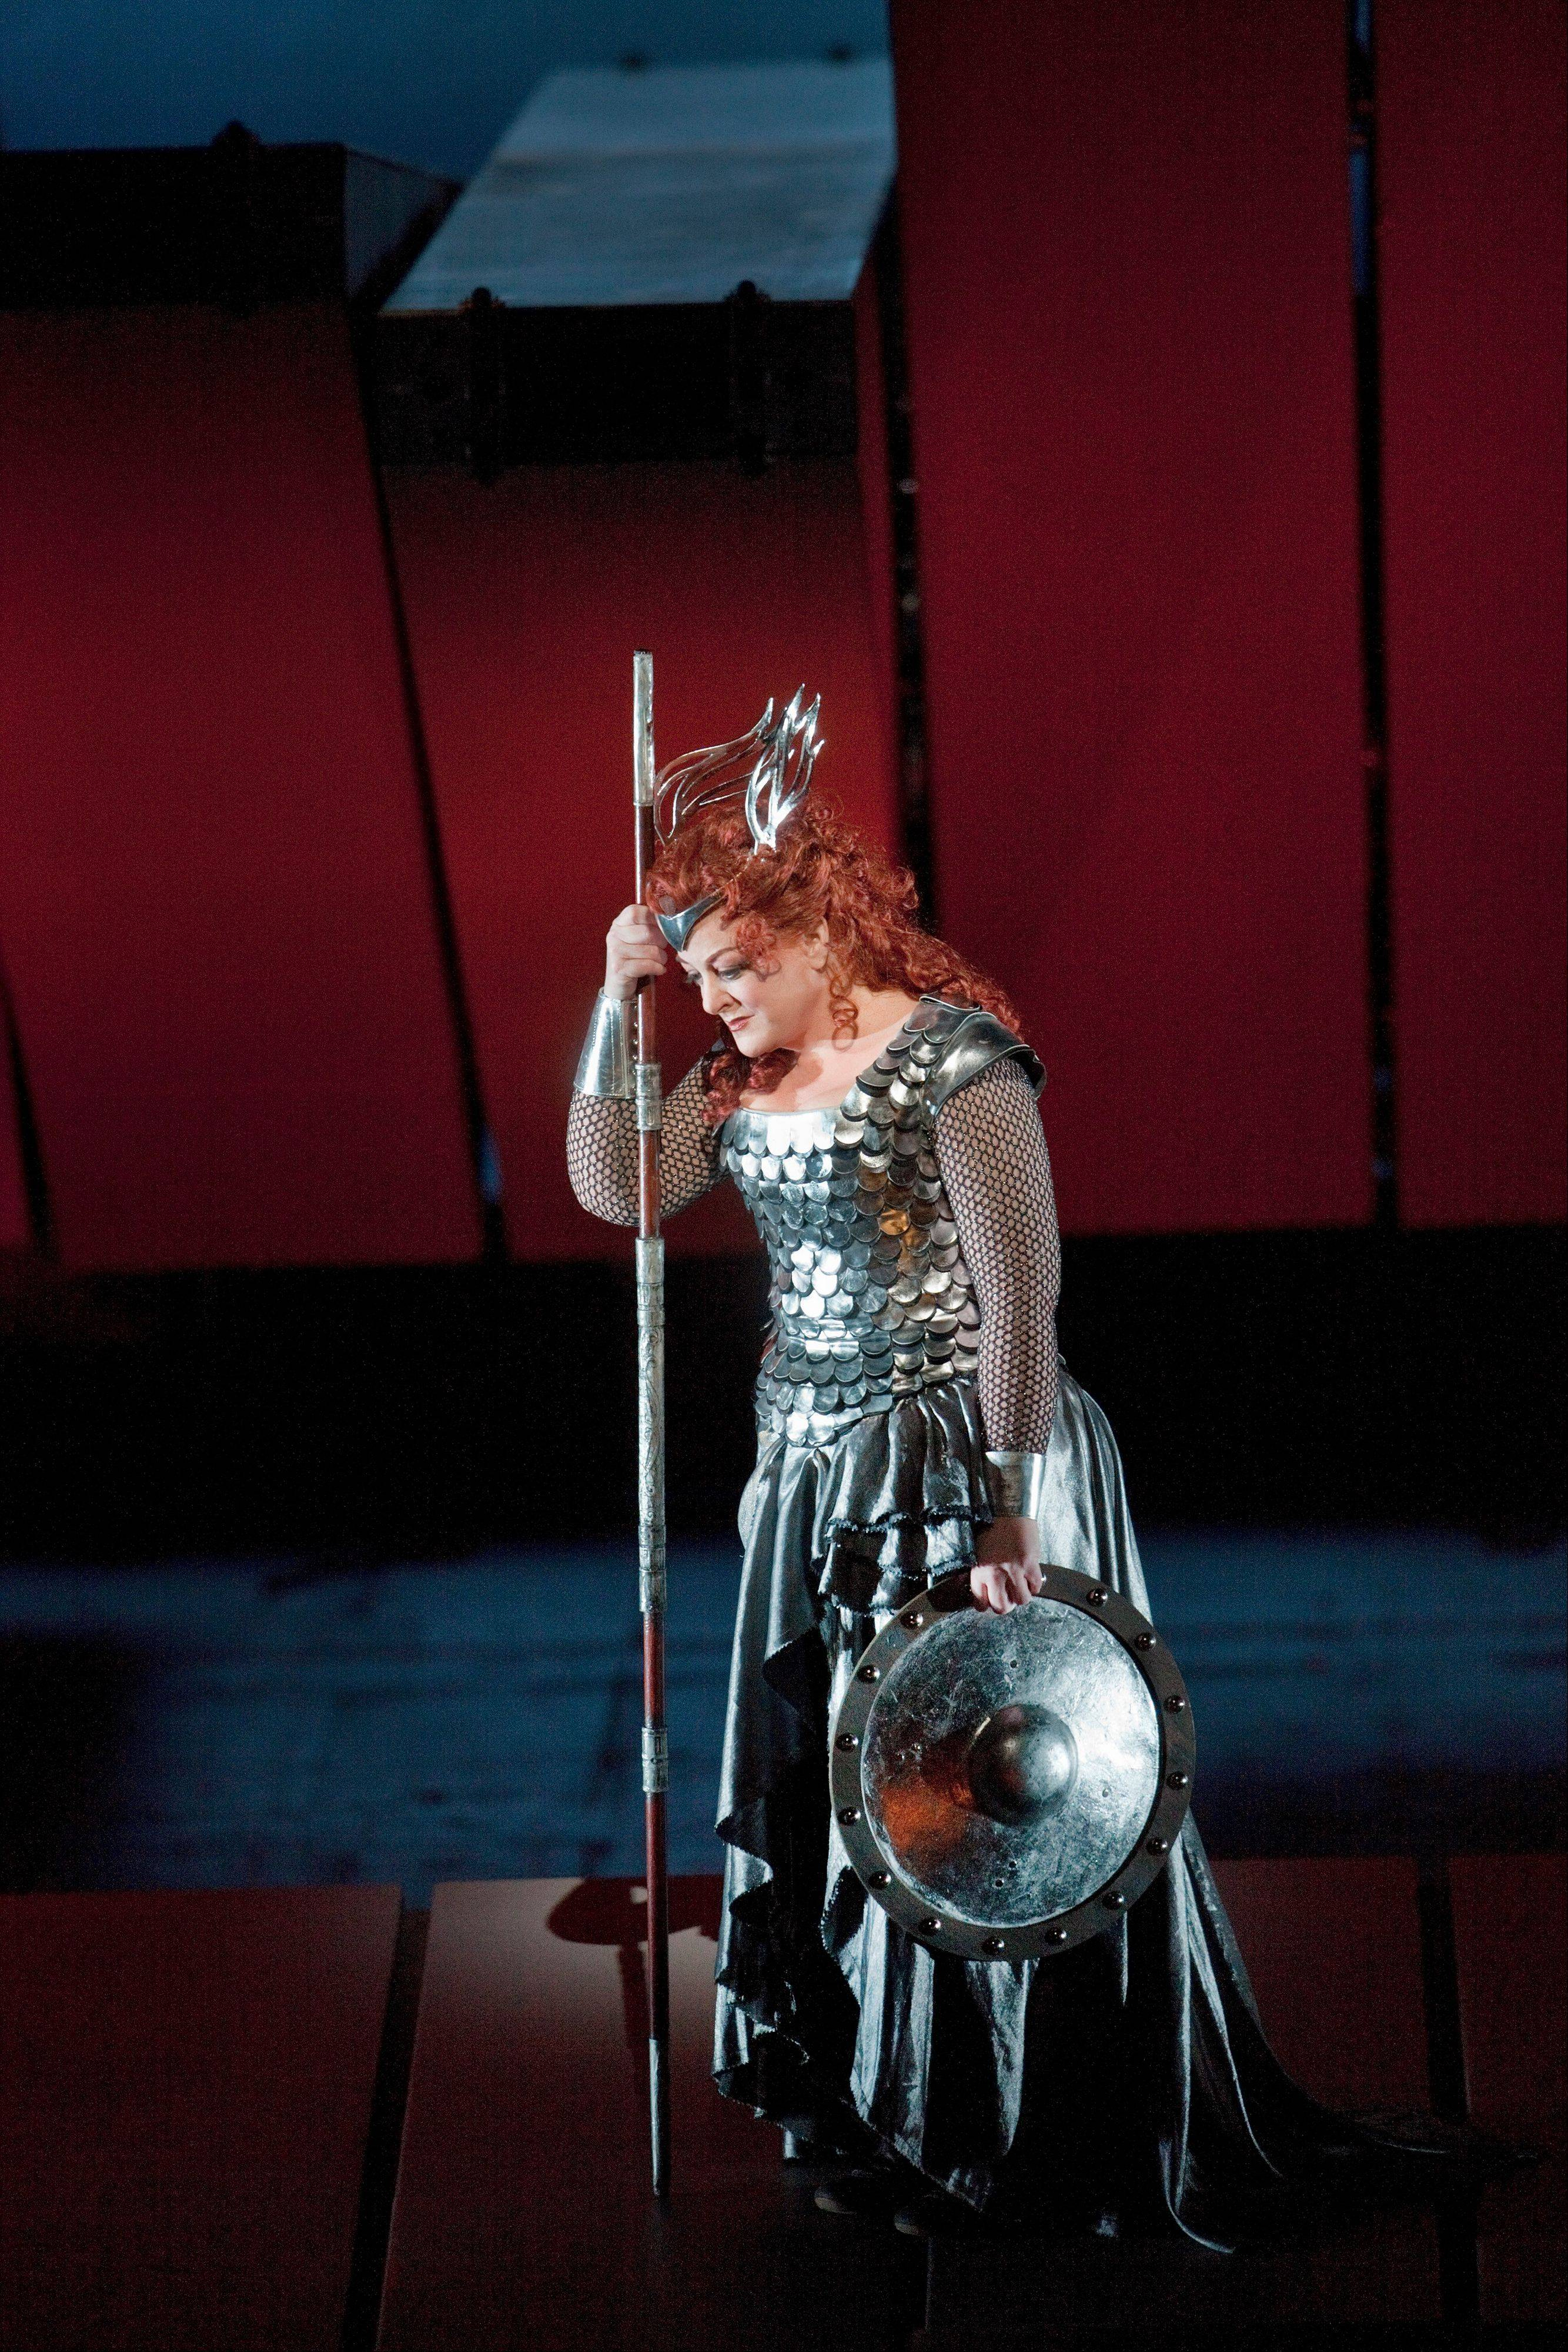 "Wheeling native Deborah Voigt is part of the cast nominated for Best Opera Recording of $START_URL$""Wagner: Der Ring Des Nibelungen."";http://www.pbs.org/wnet/gperf/episodes/gp-at-the-met-wagner%E2%80%99s-ring-cycle/about-the-opera/1312/$STOP_URL$"